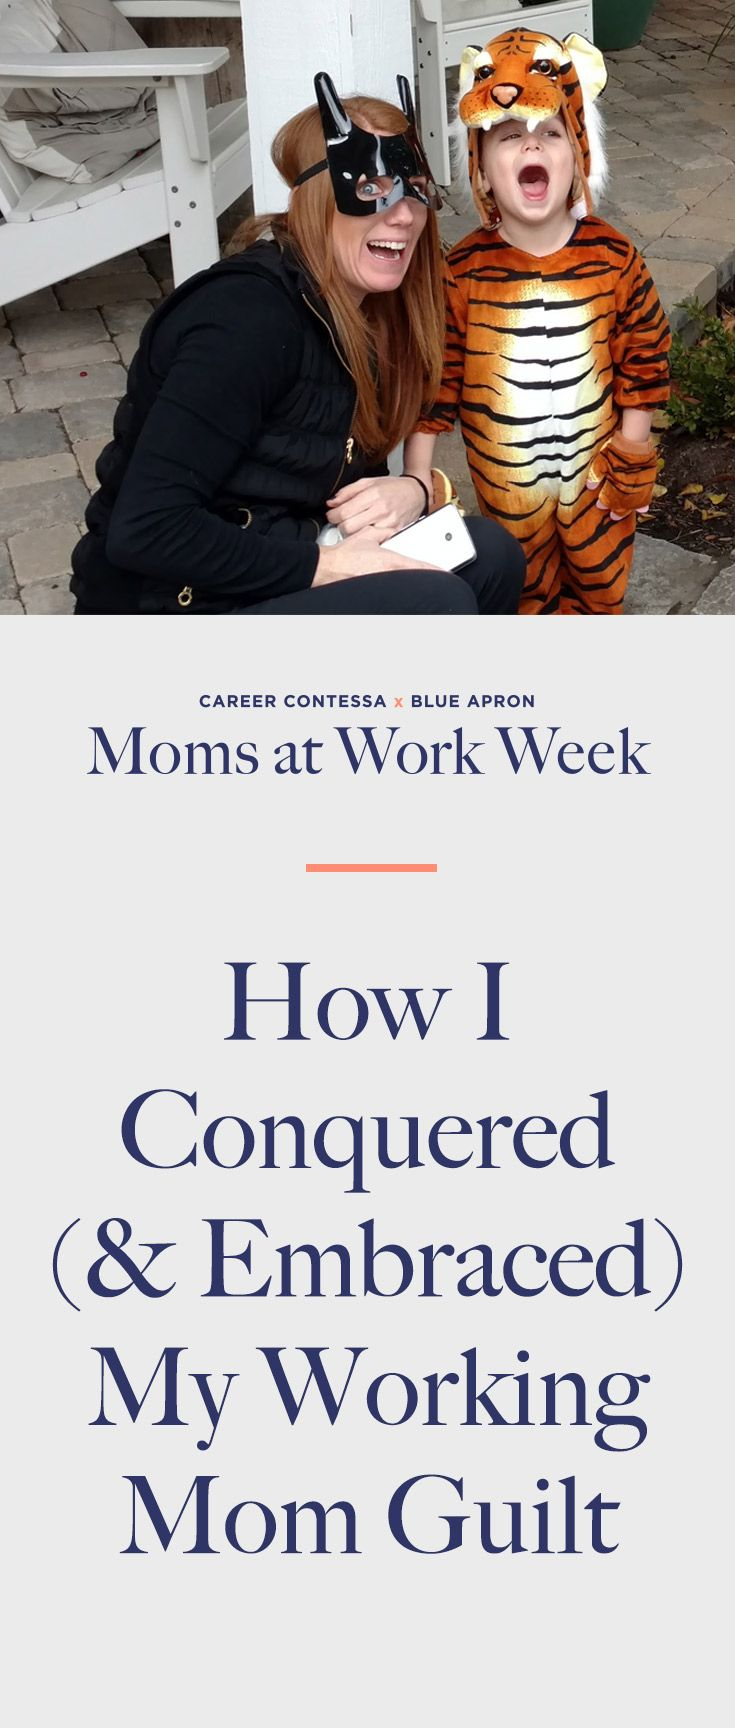 Blue apron quality auditor - How To Face And End Working Mom Guilt